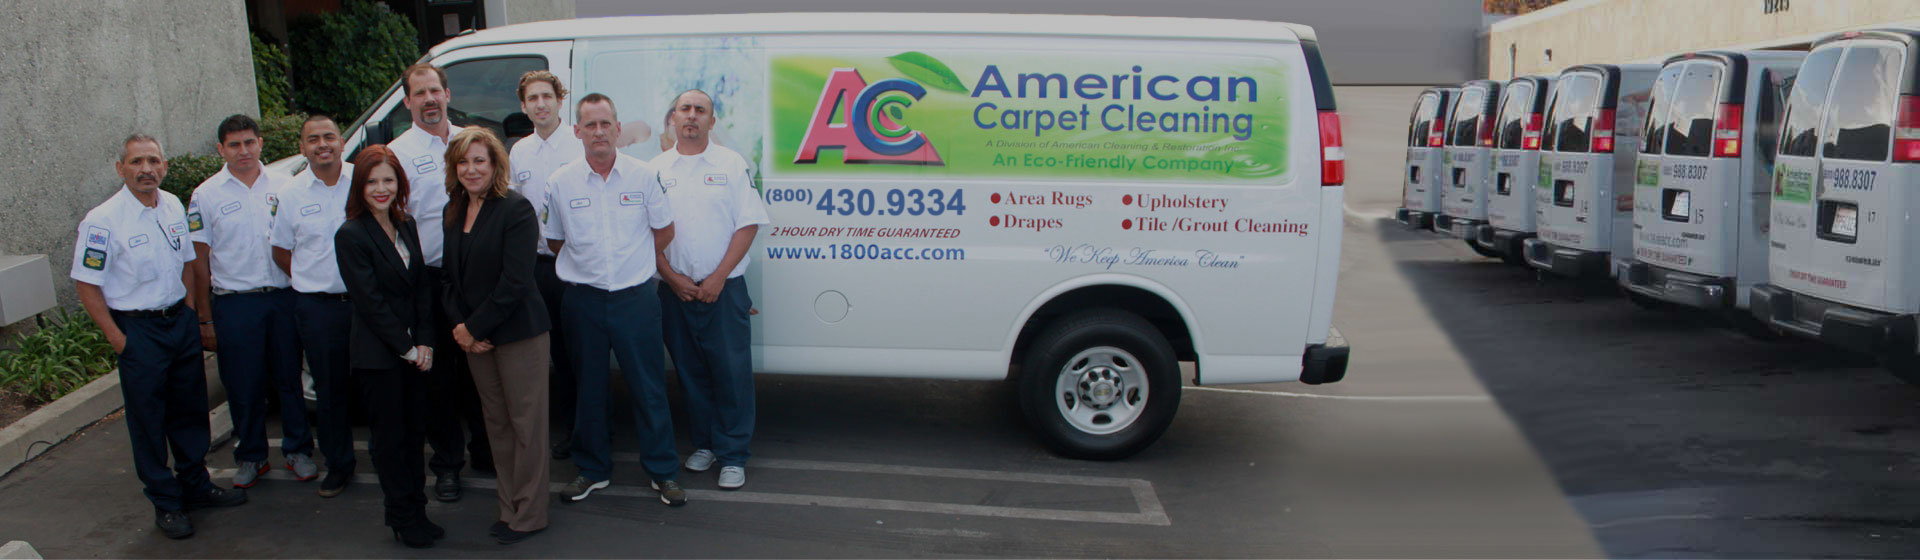 American Carpet Cleaning LA | Carpet Cleaning in Los Angeles | Carpet Cleaning in Simi Valley, Ca | Carpet Cleaning in Thousand Oaks, Ca | Carpet Cleaning in San Fernando Valley | Carpet Cleaning in Ventura, Ca | Carpet Cleaning in Beverly Hills, Ca | Carpet Cleaning in Camarillo, Ca | Carpet Cleaning in Oak Park, Ca | Carpet Cleaning in Santa Clarita Valley | Carpet Cleaning in Bel Air, Ca